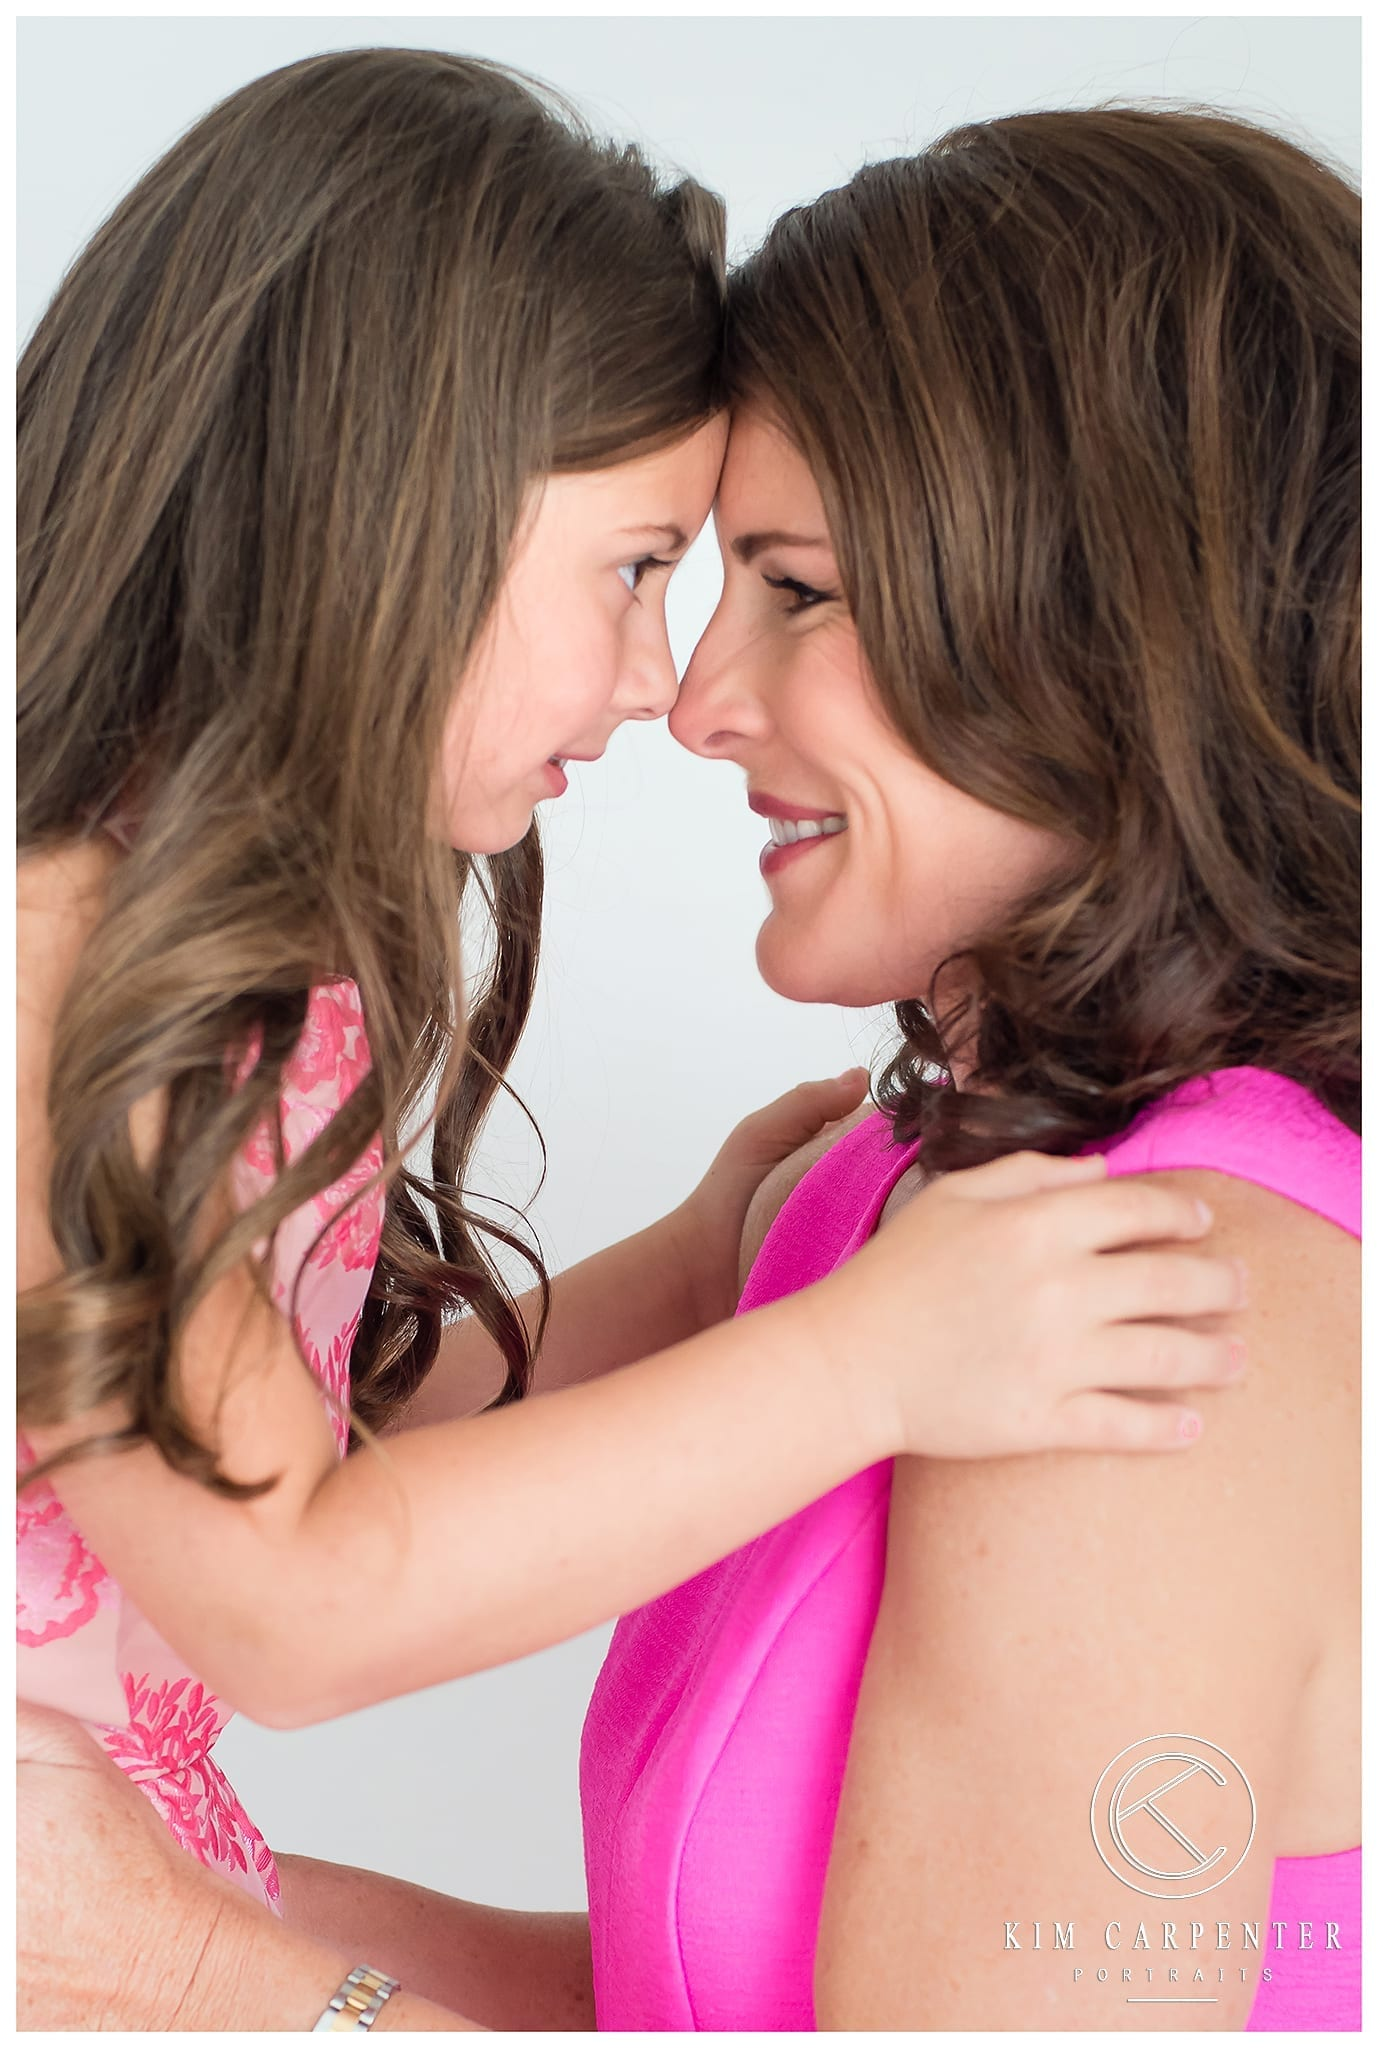 Lakeland Photographer - Portrait of a Mother and Daughter looking at each other